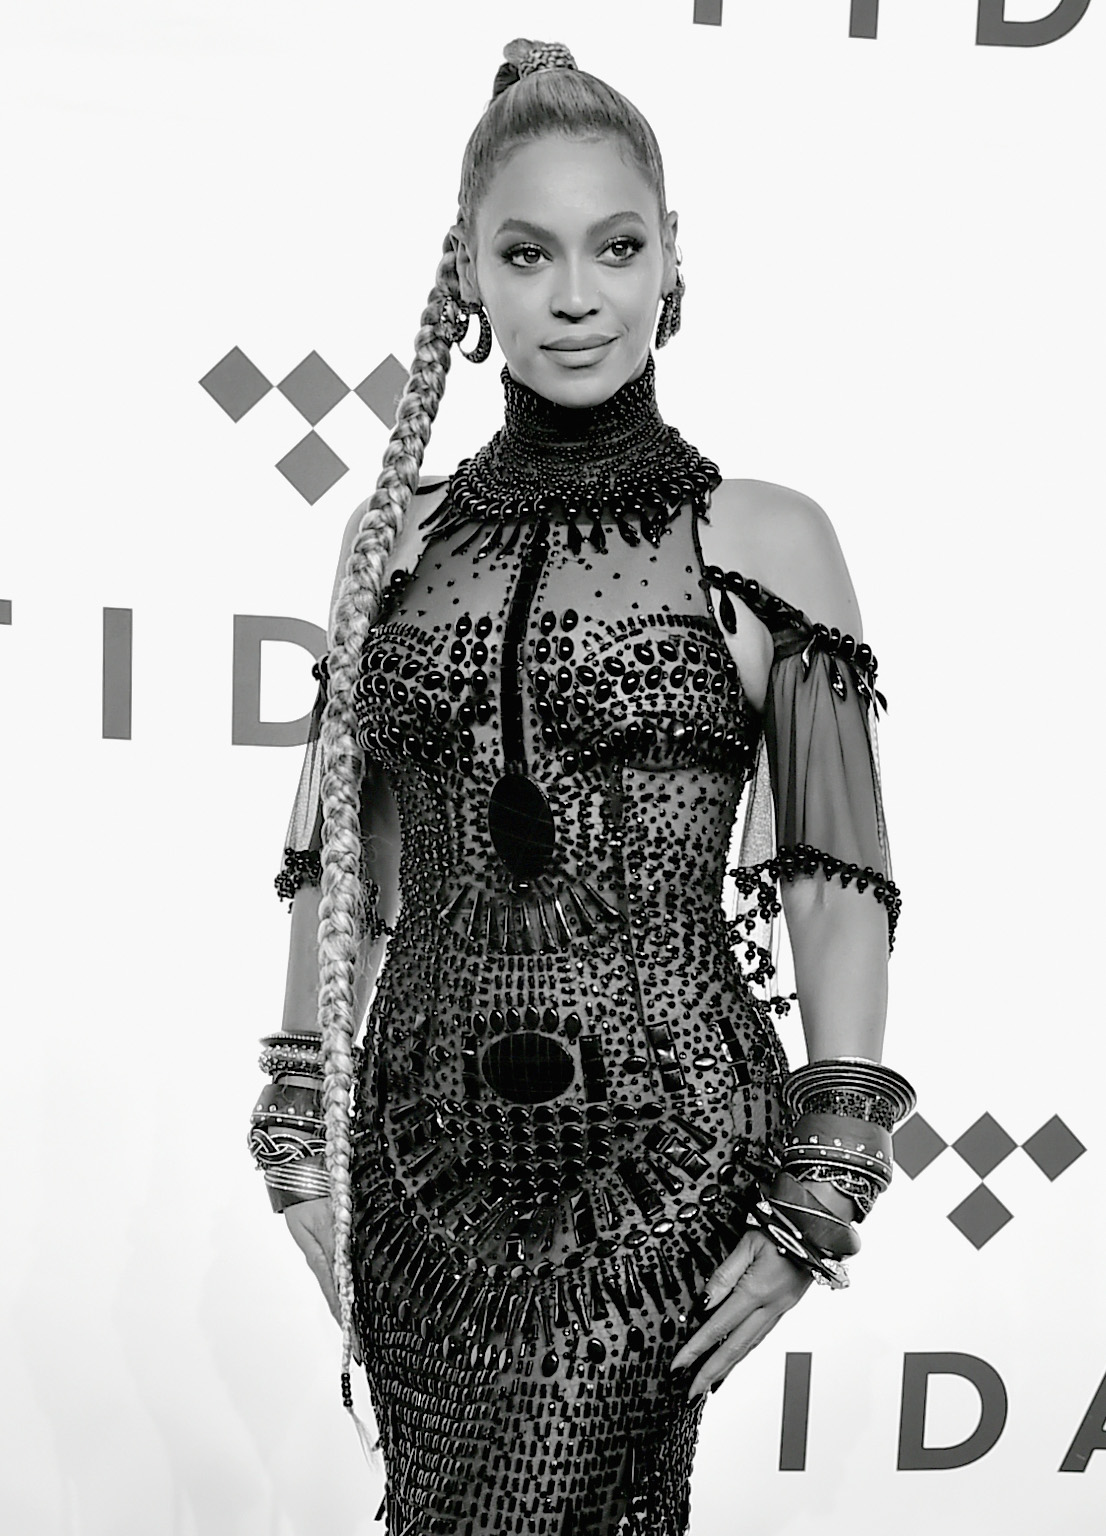 Celebrity Arrivals at TIDAL X: 1015 concert in Brooklyn: Beyonce, Nicki Minaj, T.I., Emeli Sande